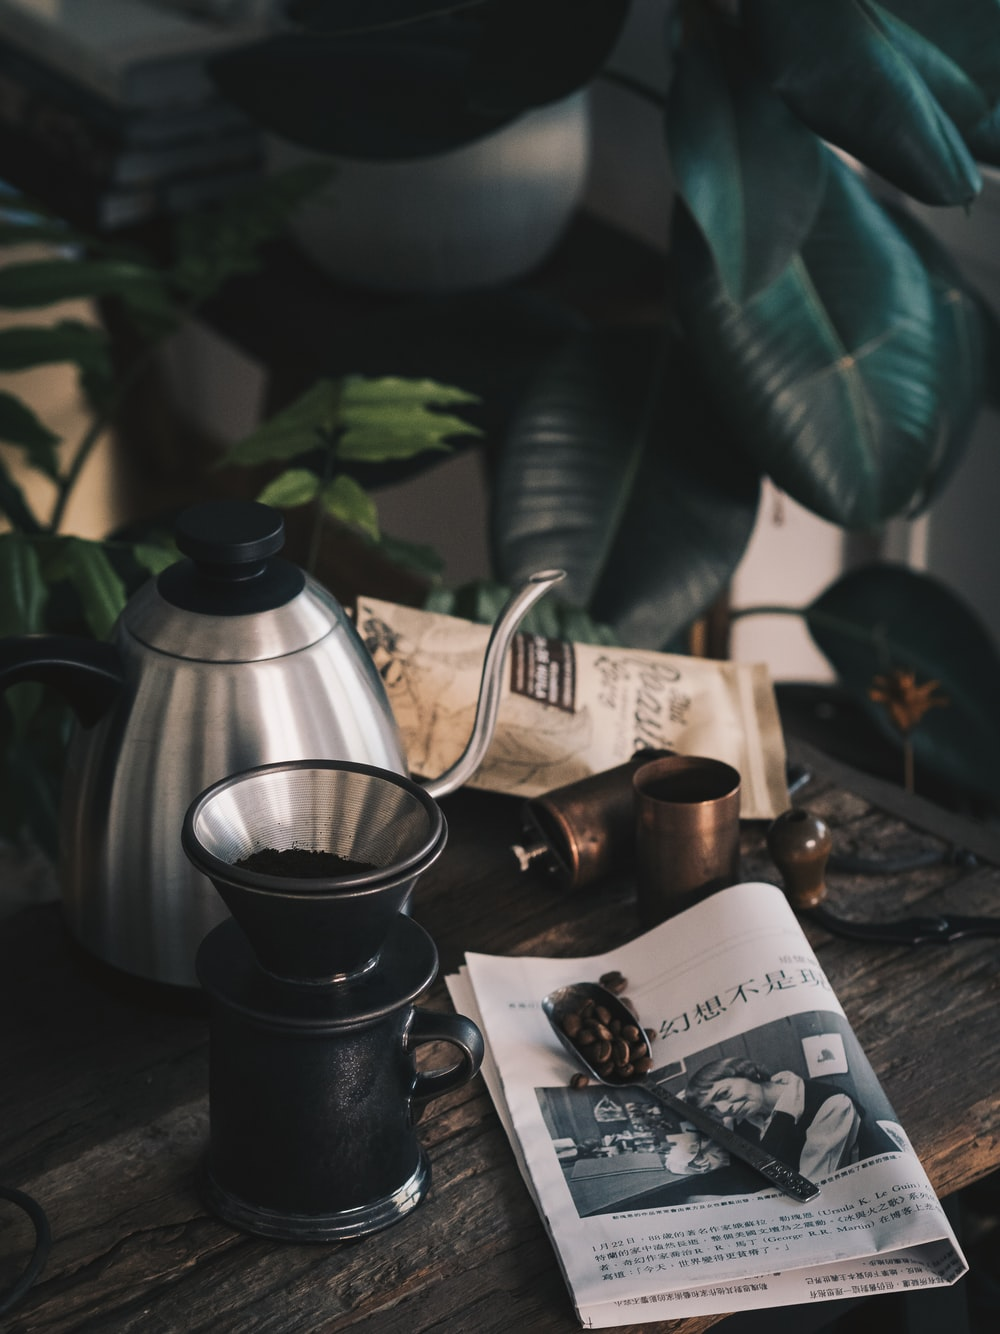 black coffee grinder beside gray stainless steel teapot near green rubber plant